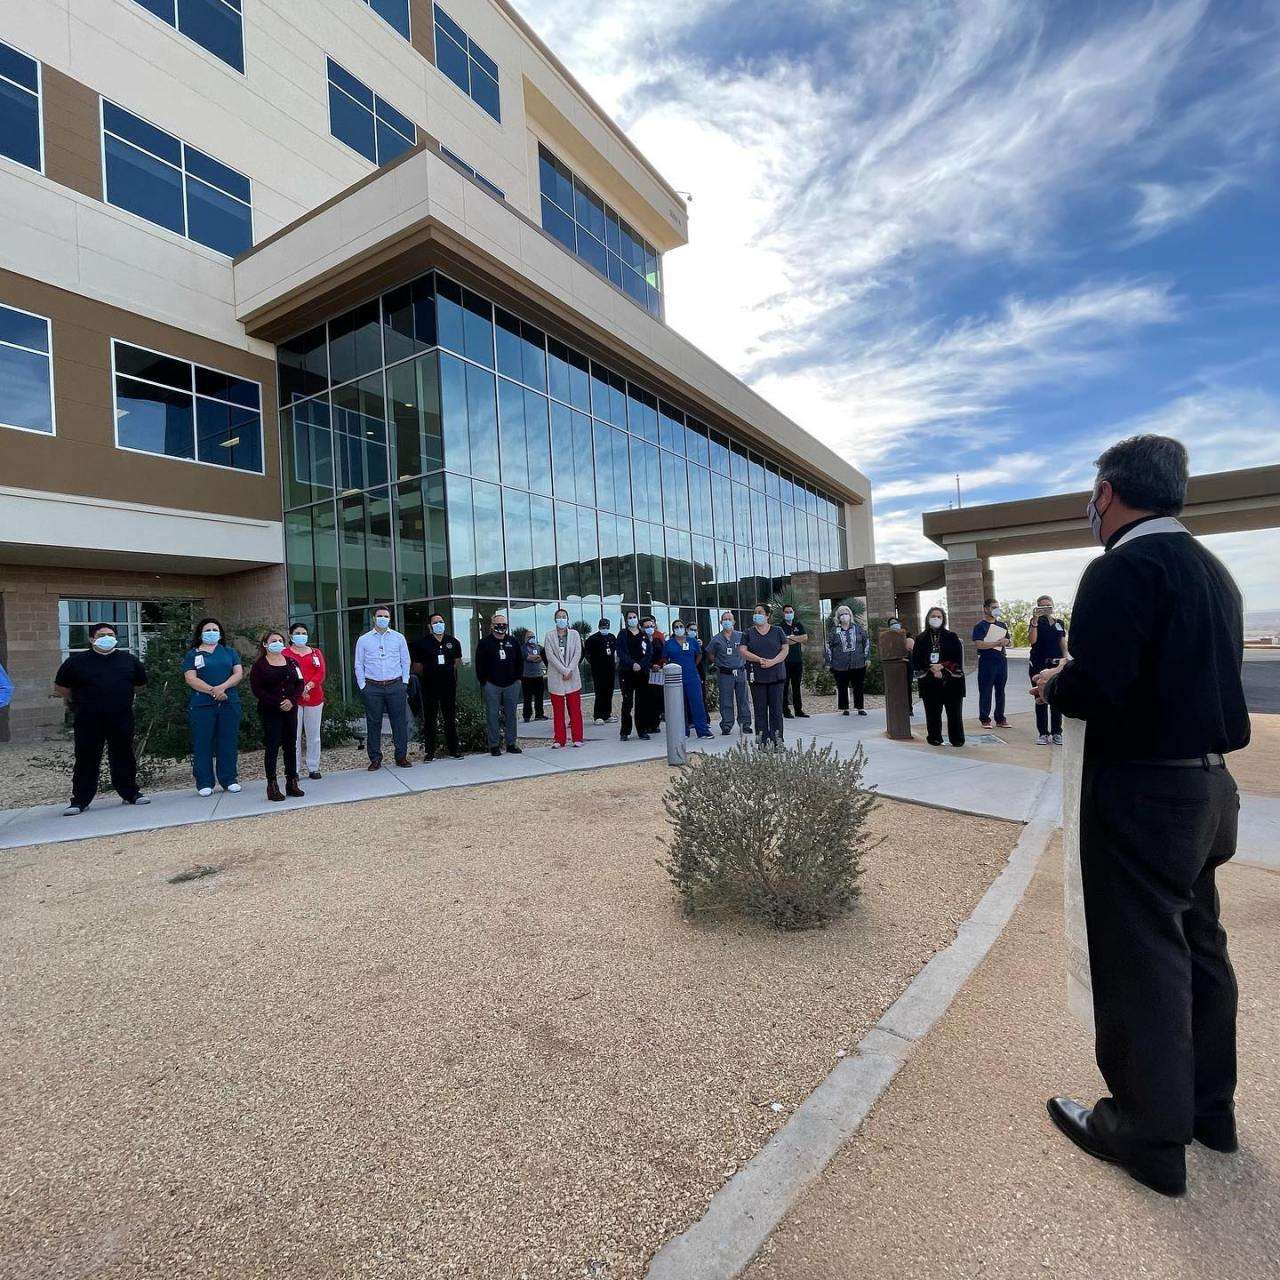 Diocese of El Paso priests to offer blessings to COVID-19 patients and hospital staff